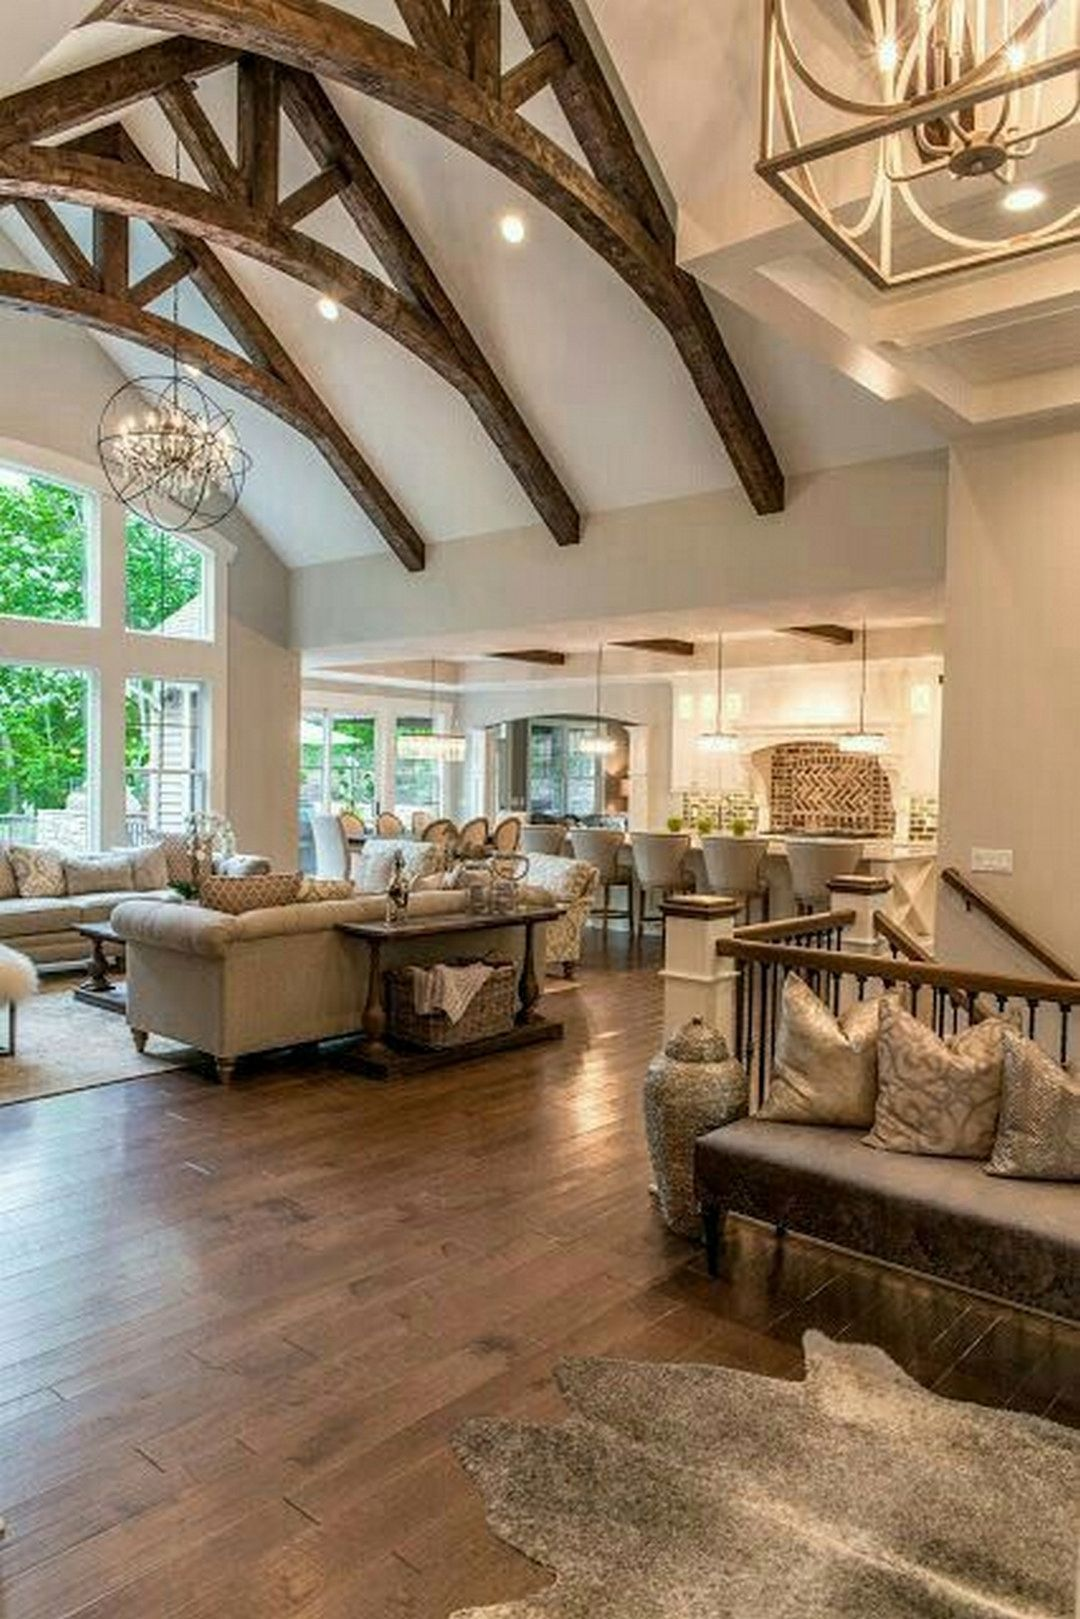 Bon Vaulted Ceiling With Wooden Beams. This Is What I Would Like To See Done In  The Farm House. I Love The Beams And The Vaulted Ceiling And The Large  Windows